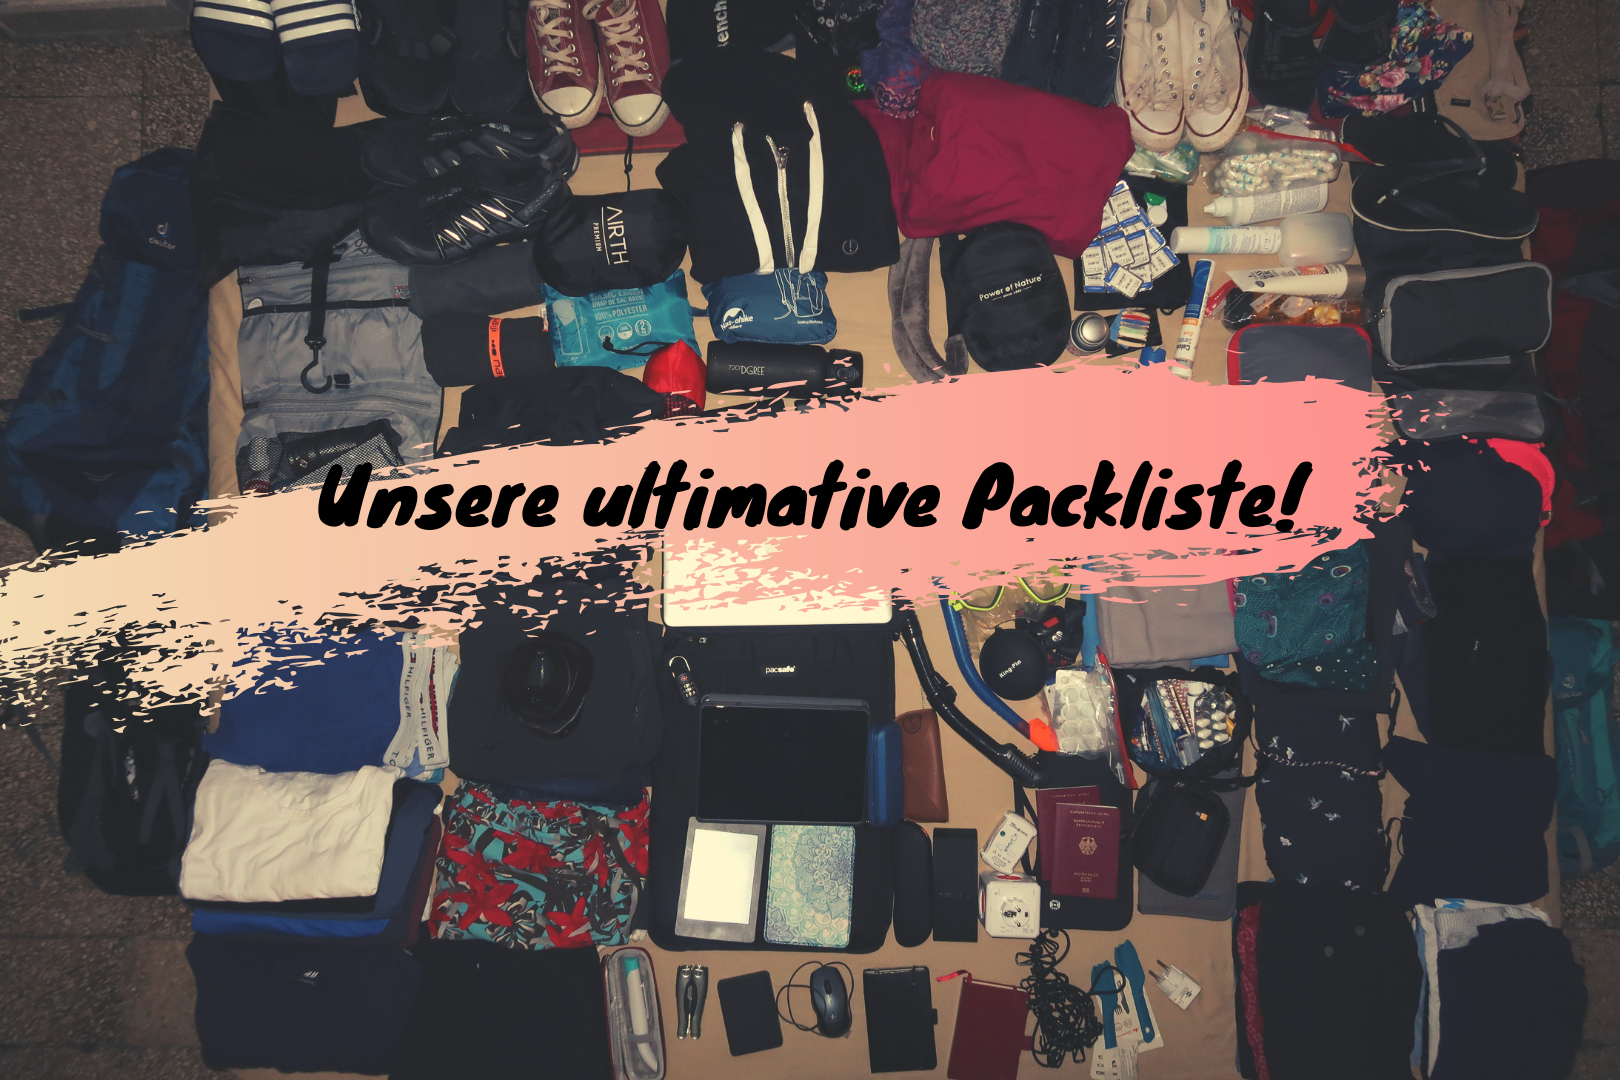 Unsere ultimative Packliste